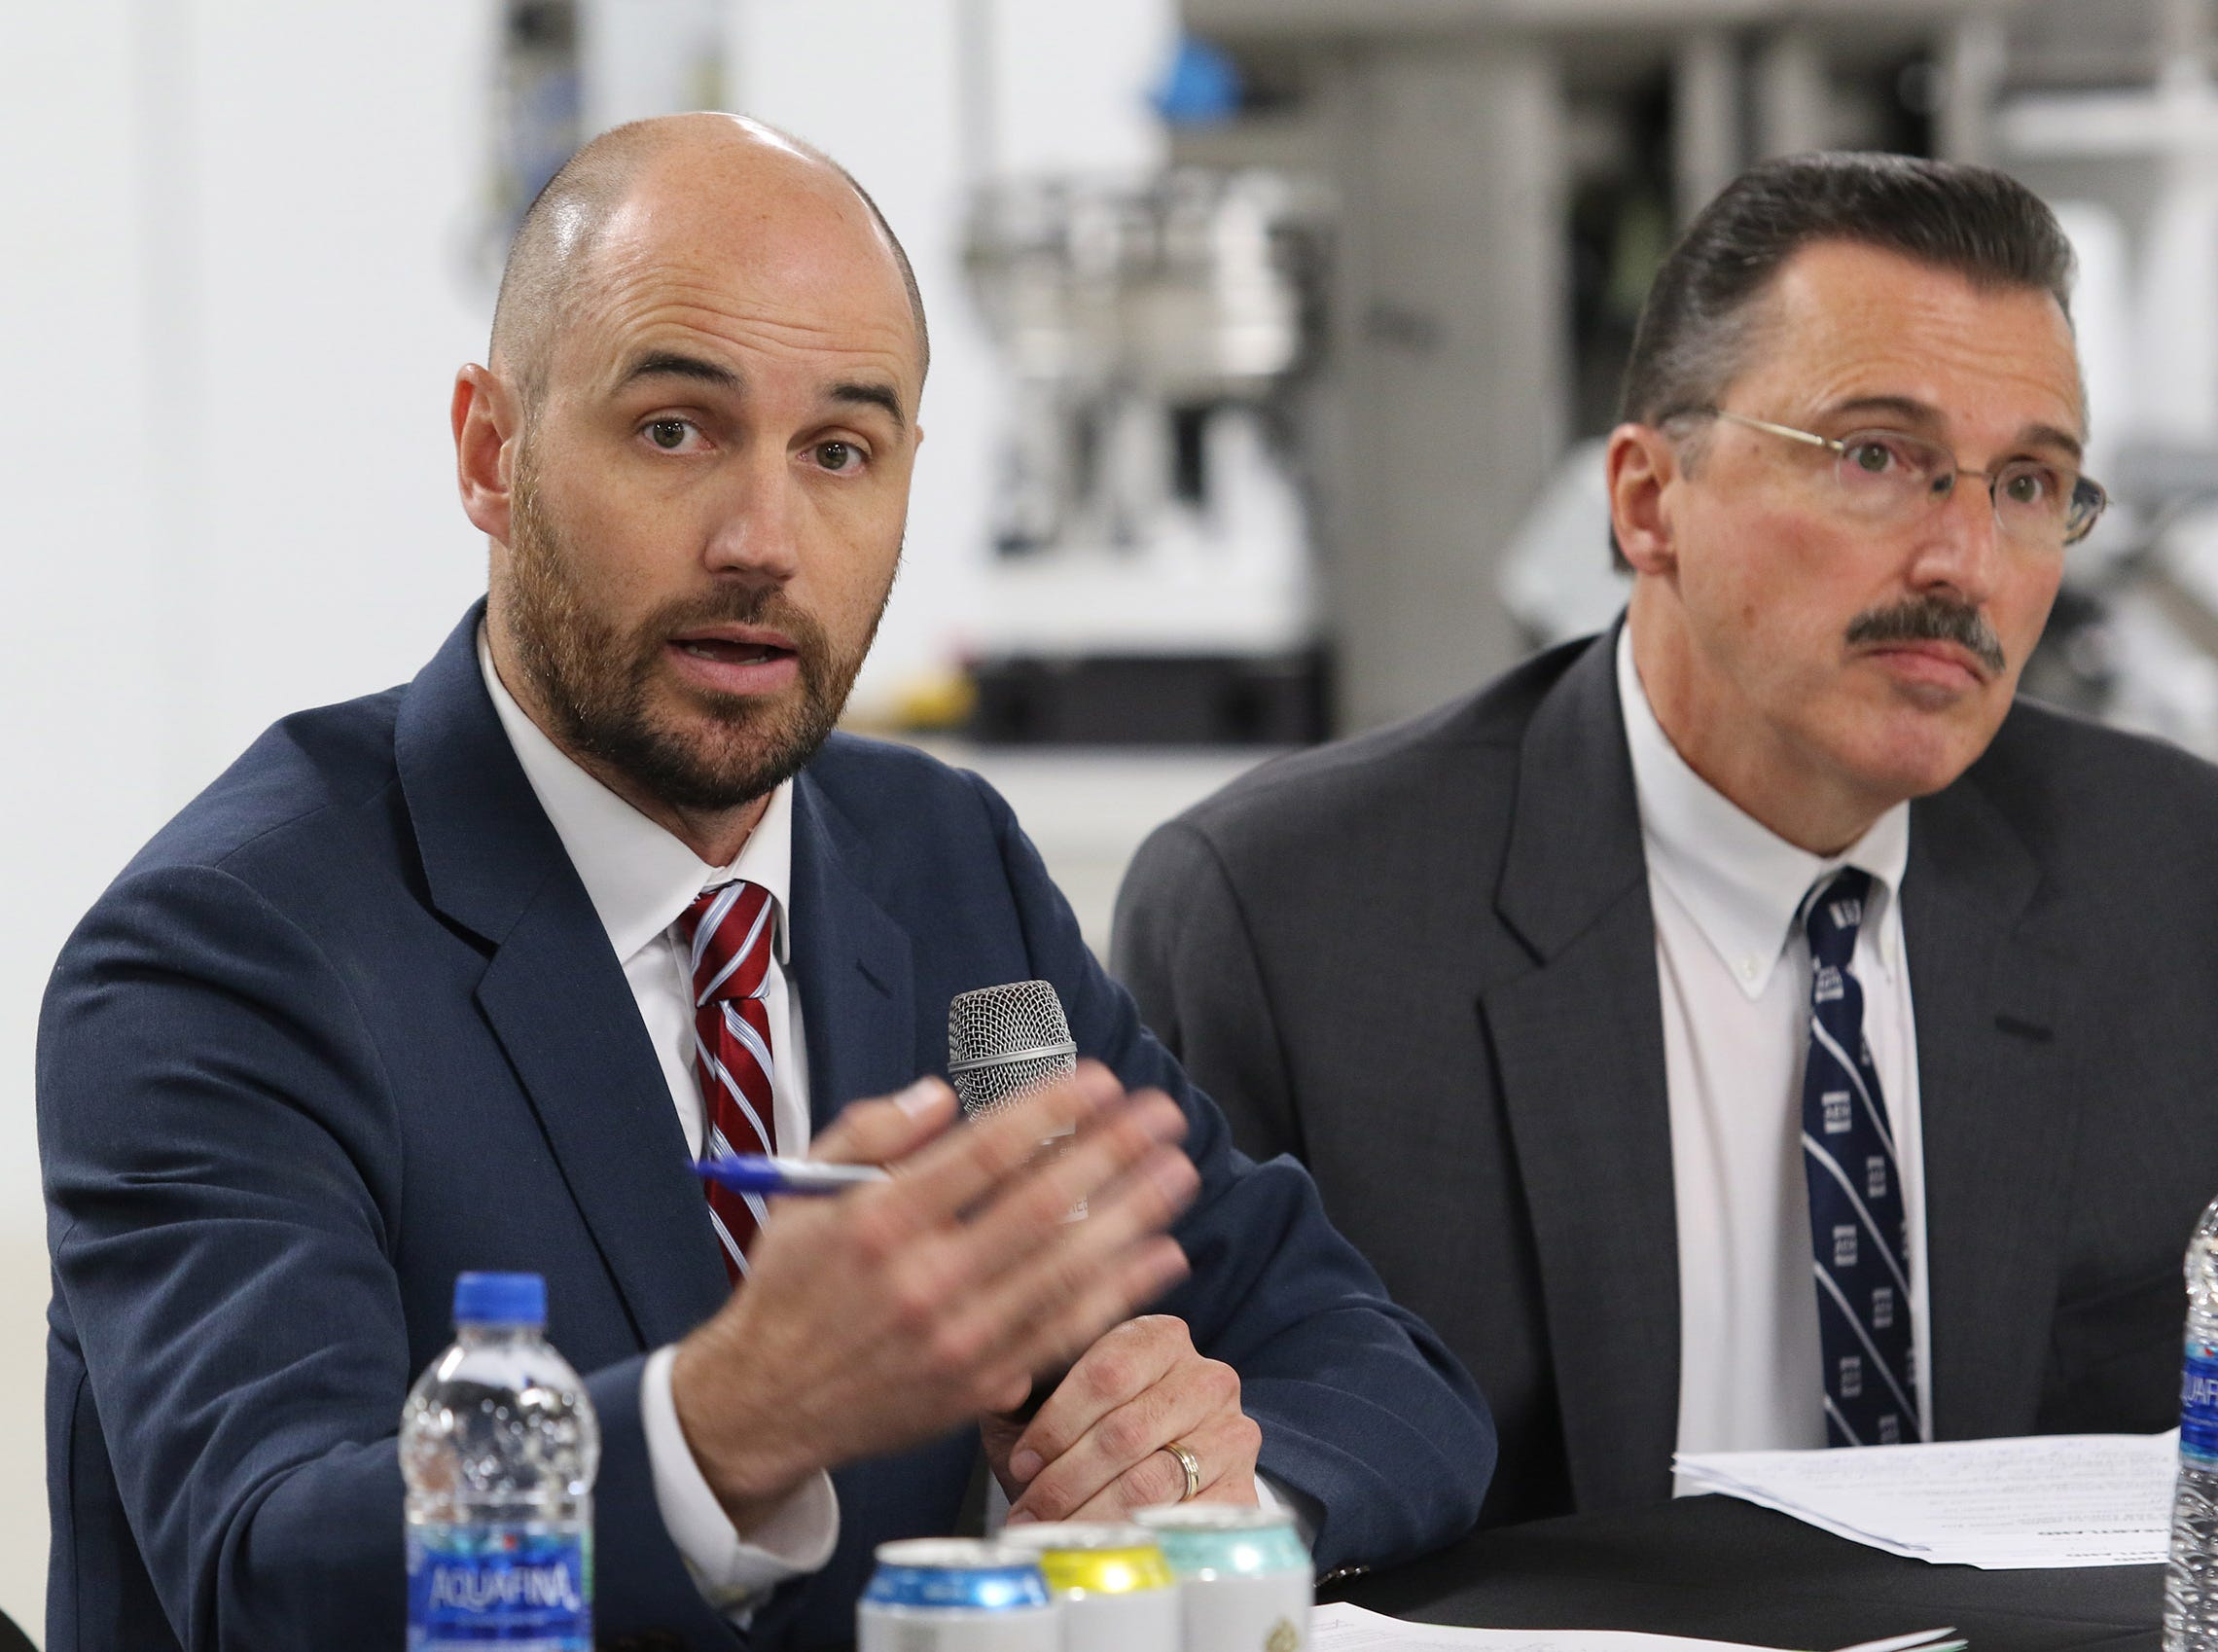 US Chamber of Commerce Midwest Region Executive Director John Kirchner (left) talks about the impact of tariffs on Wisconsin businesses during a tariff town hall at Husco International in Waukesha on Oct. 25. The event was organized by Tariffs Hurt the Heartland.